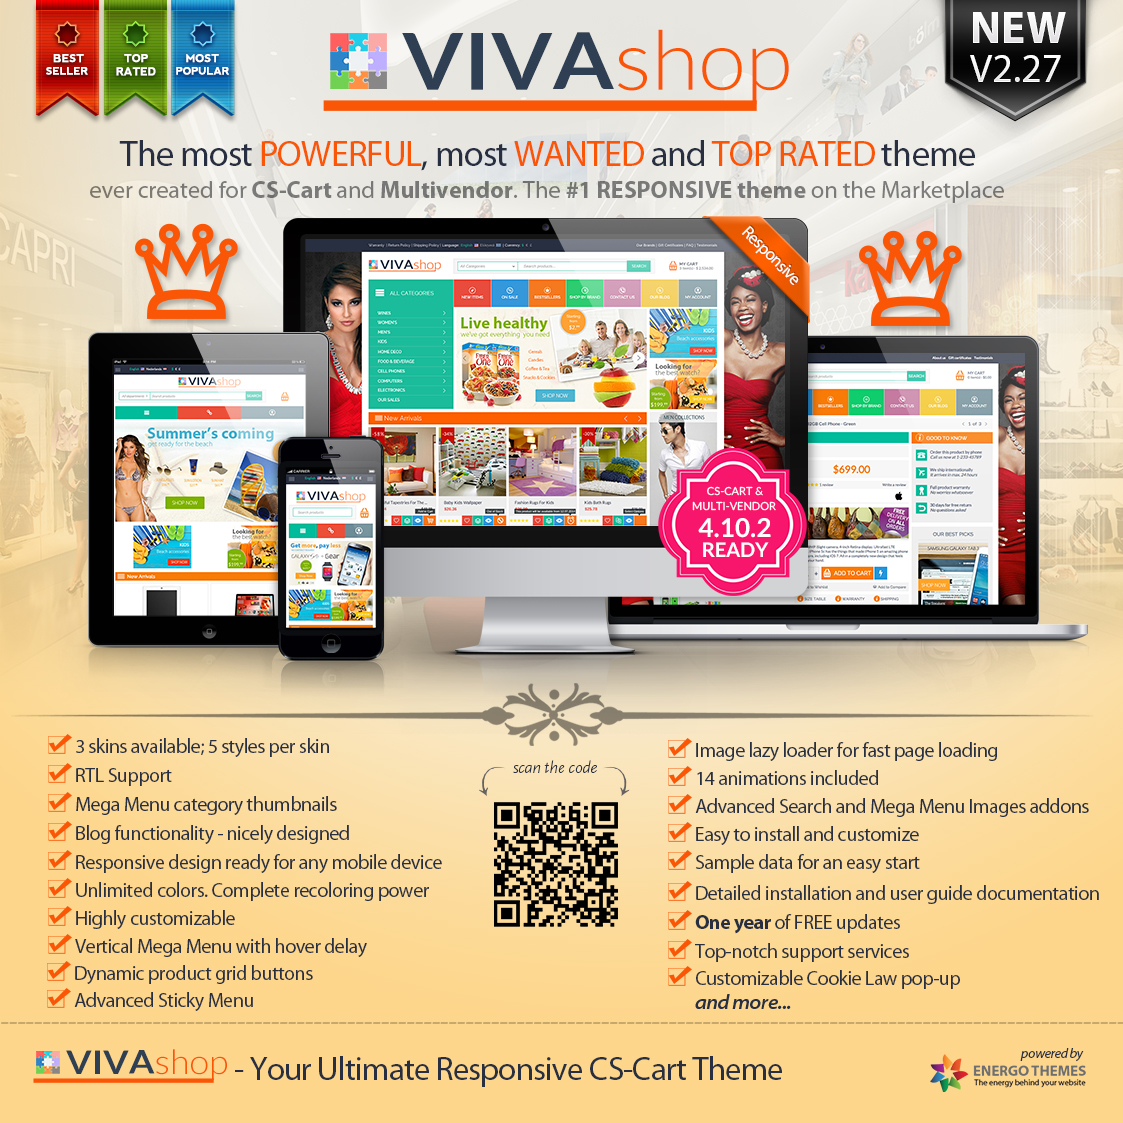 VIVAshop-V2.27-presentation-page-MP.jpg